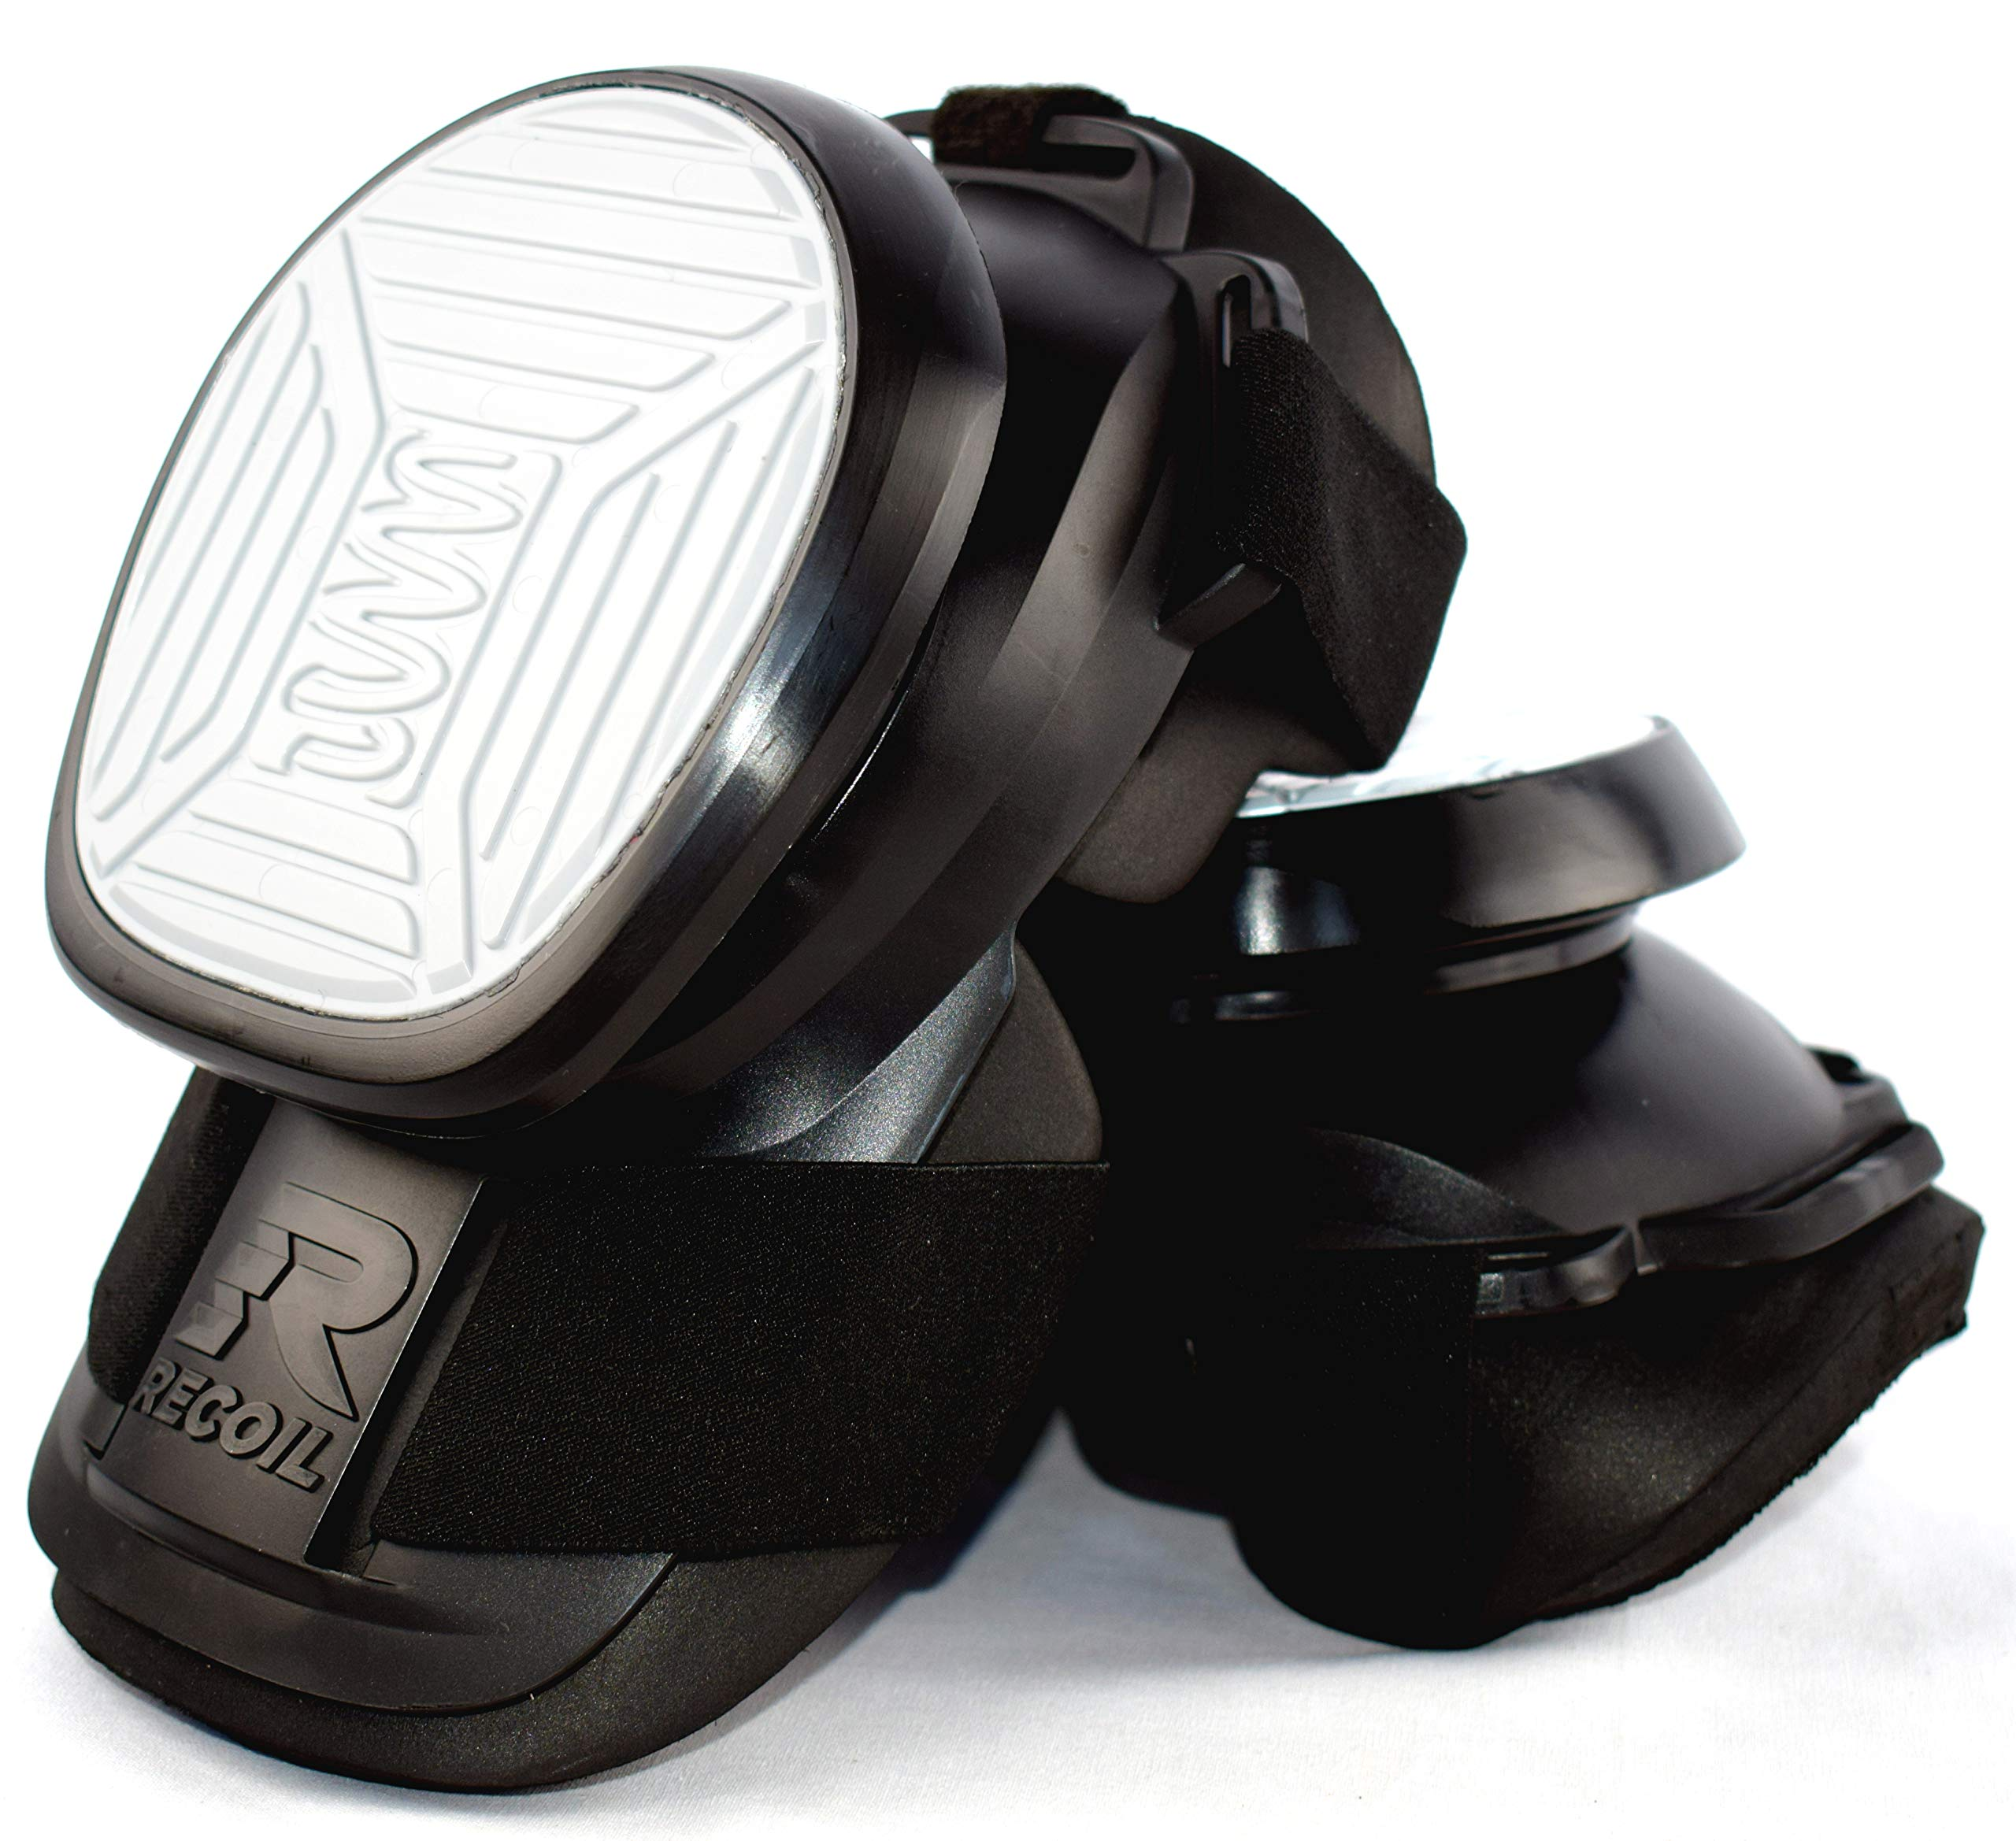 Recoil Knee Pads for Work - Professional Heavy Duty Spring Loaded Kneepads for Construction, Tiling, Flooring, Roofing and General DIY by Recoil